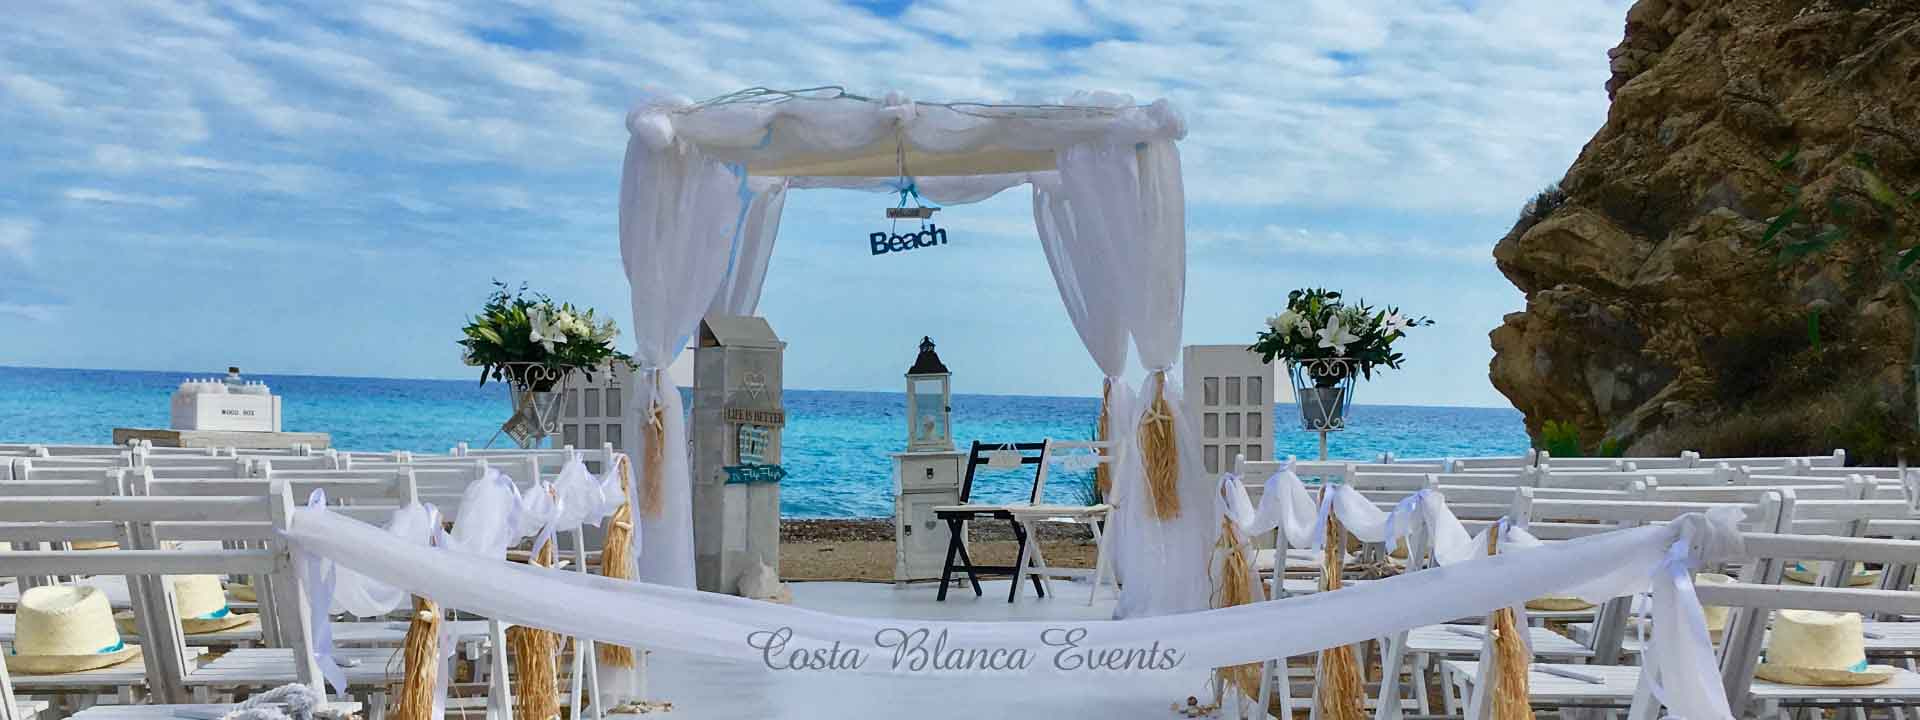 Beach wedding Spain - romantic setting with gazebo